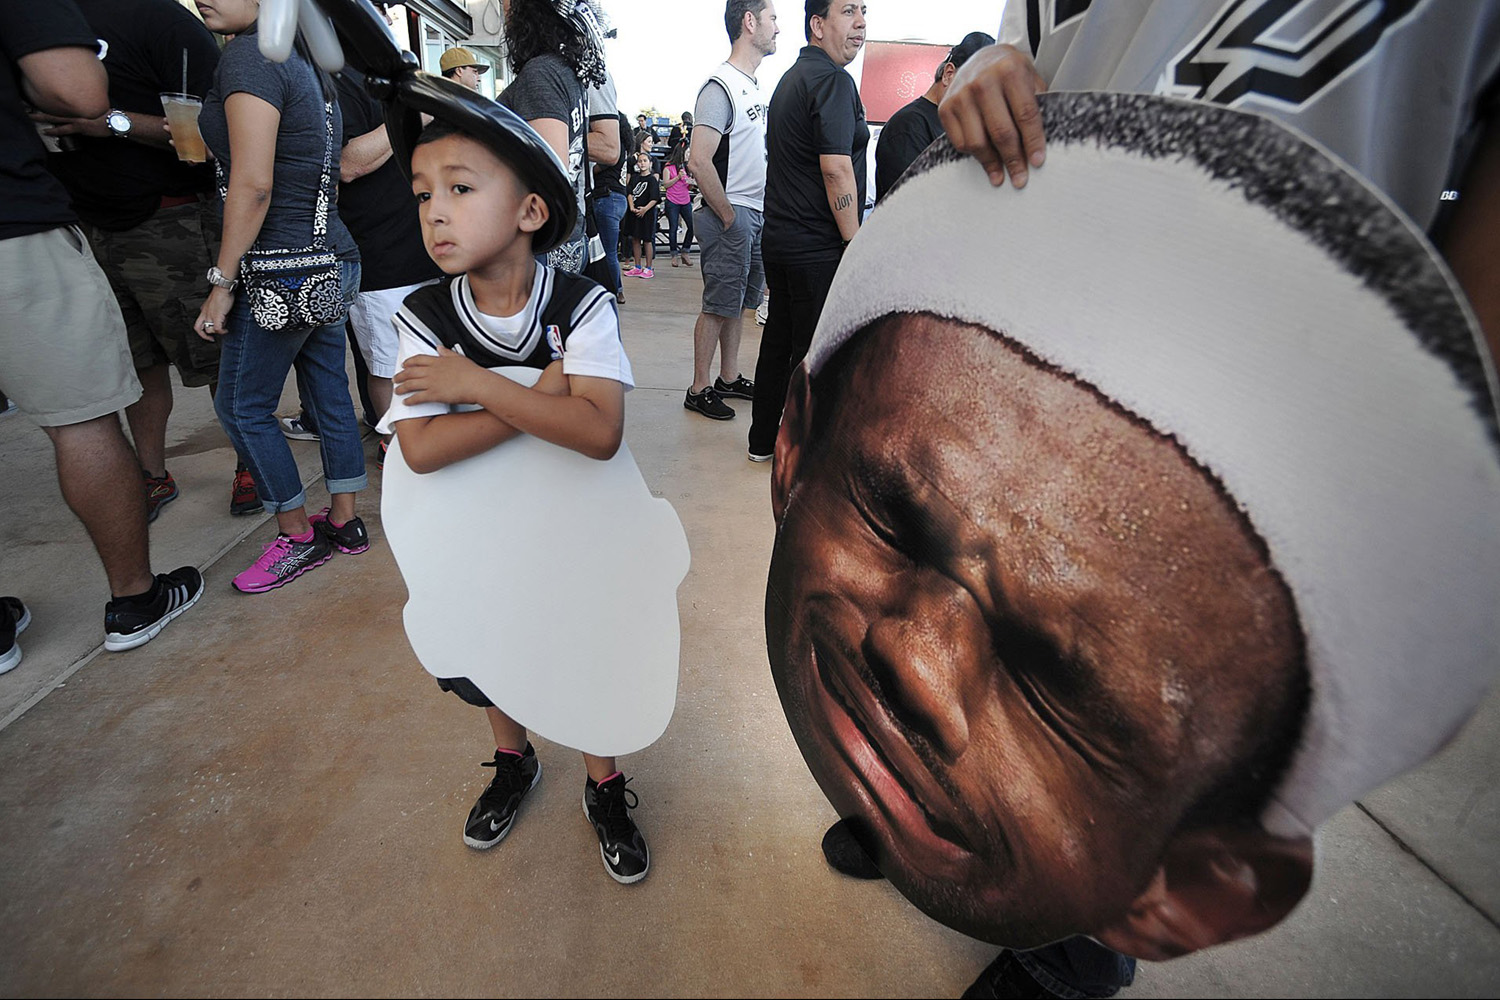 June 5, 2014. A young San Antonio Spurs fan stands next to a giant LeBron James face before the Spurs play host to James and the Miami Heat in Game 1 of the NBA Finals, at the AT&T Center in San Antonio.